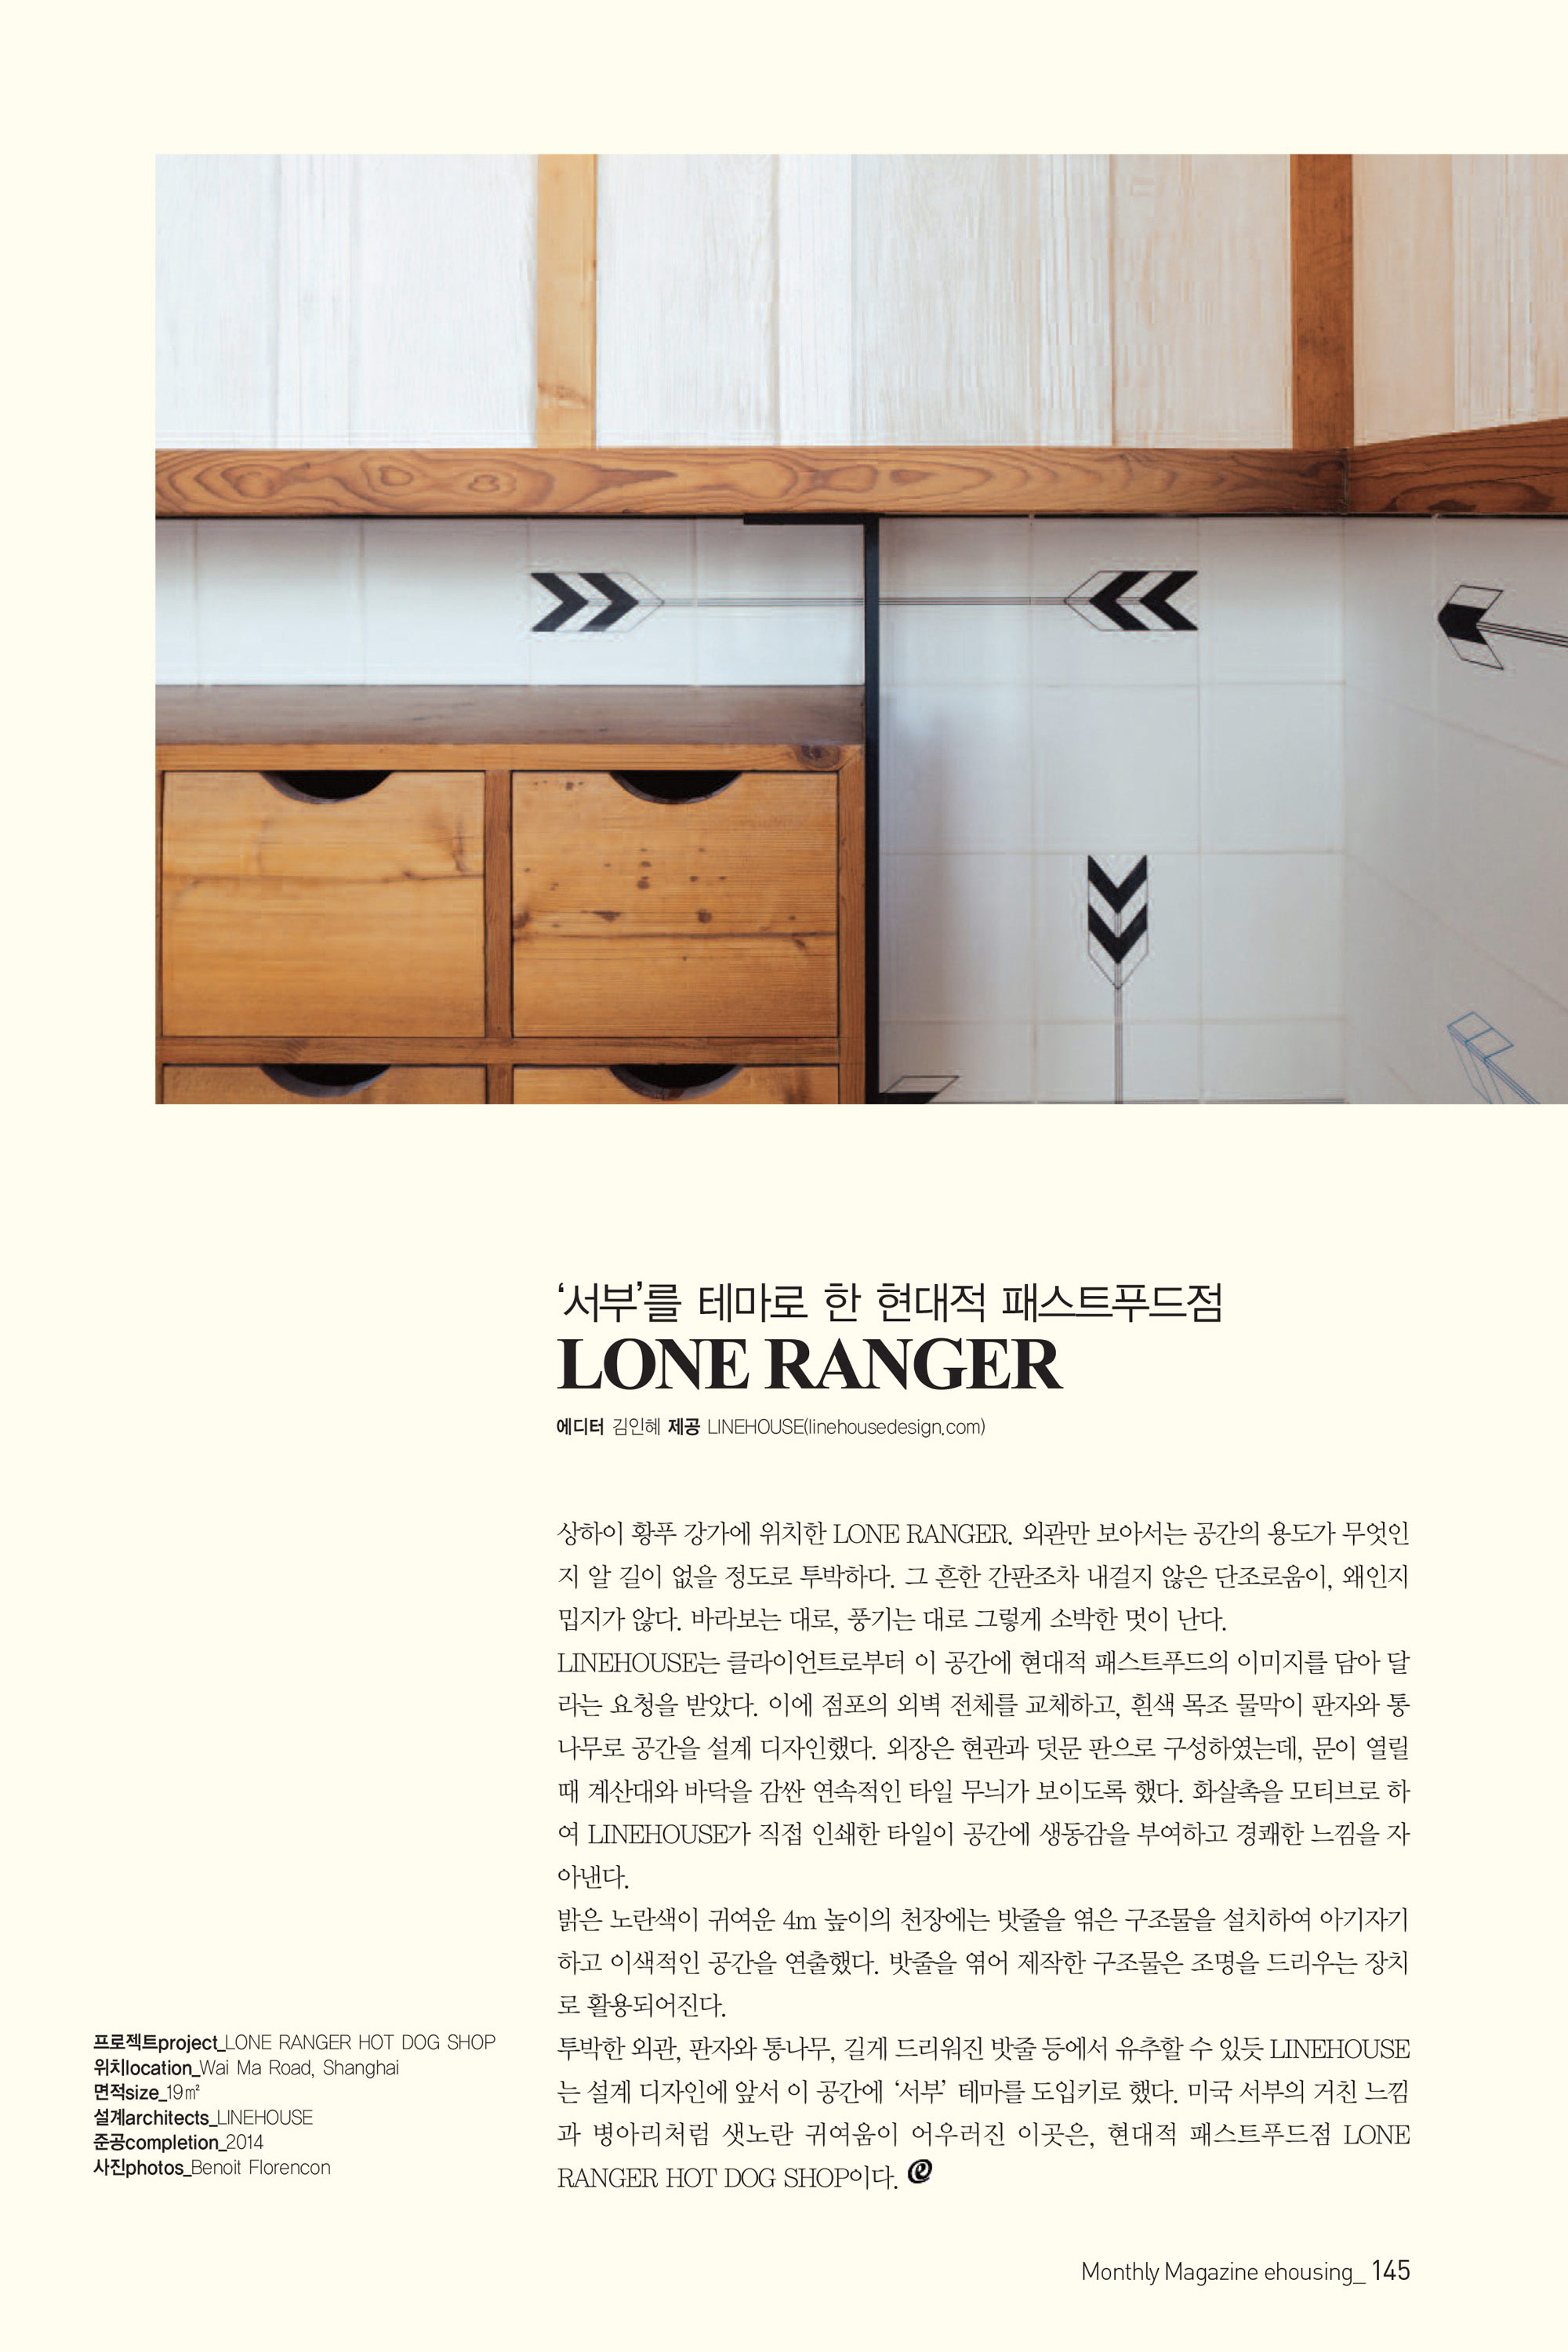 Ehousing Magazine, Lone Ranger, March 2015